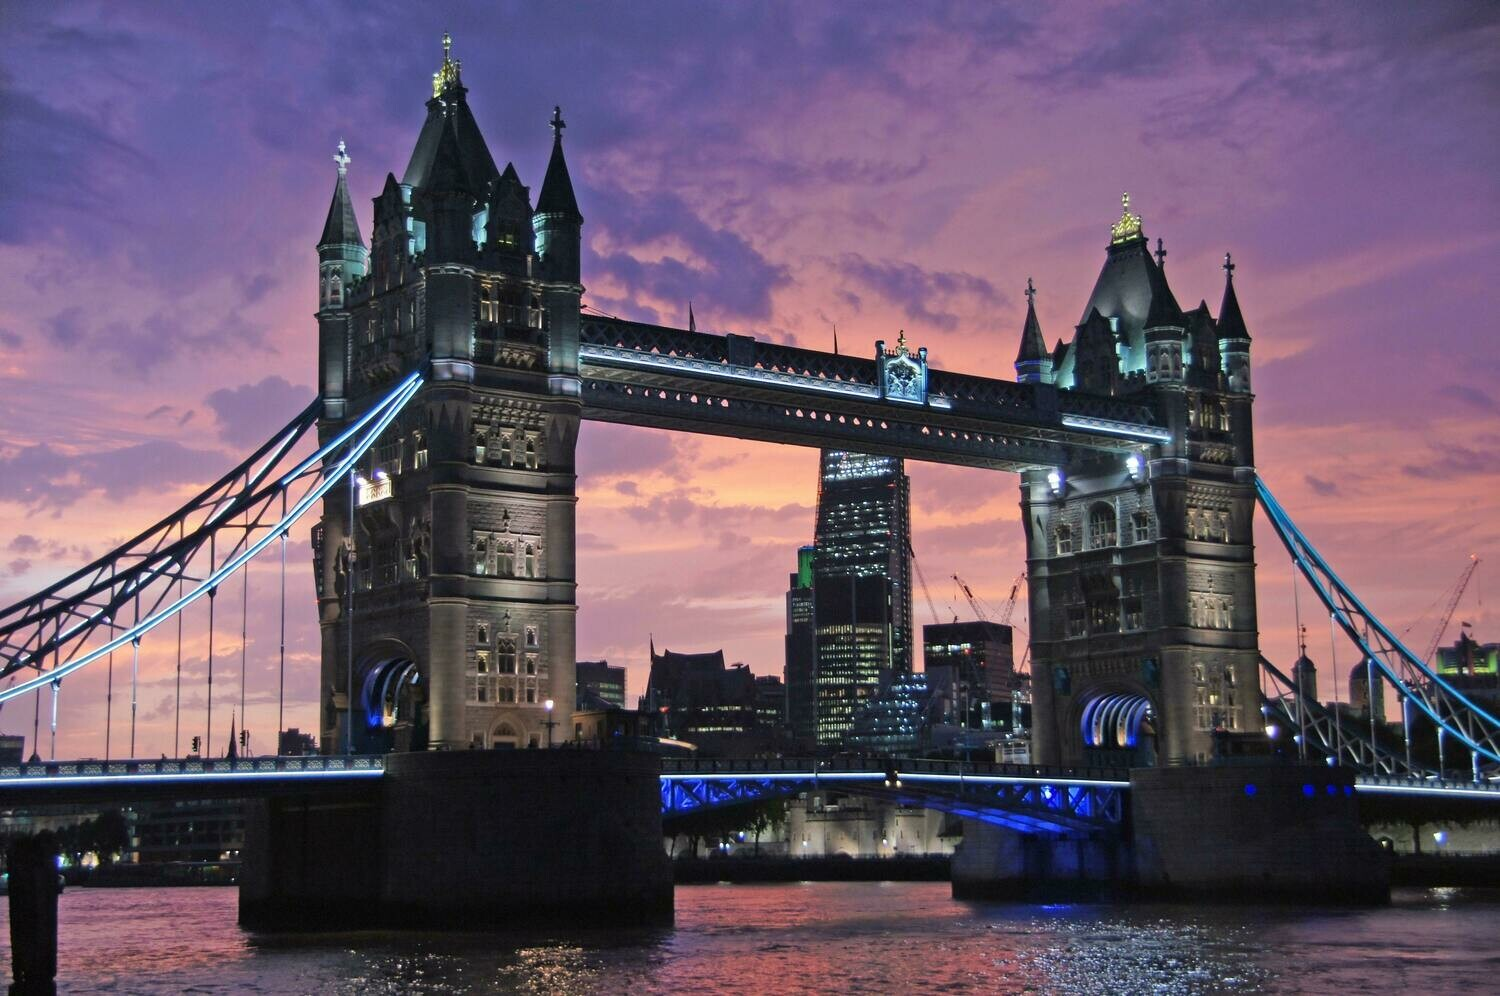 London Bridge - Full Drill Diamond Painting - Specially ordered for you. Delivery is approximately 4 - 6 weeks.